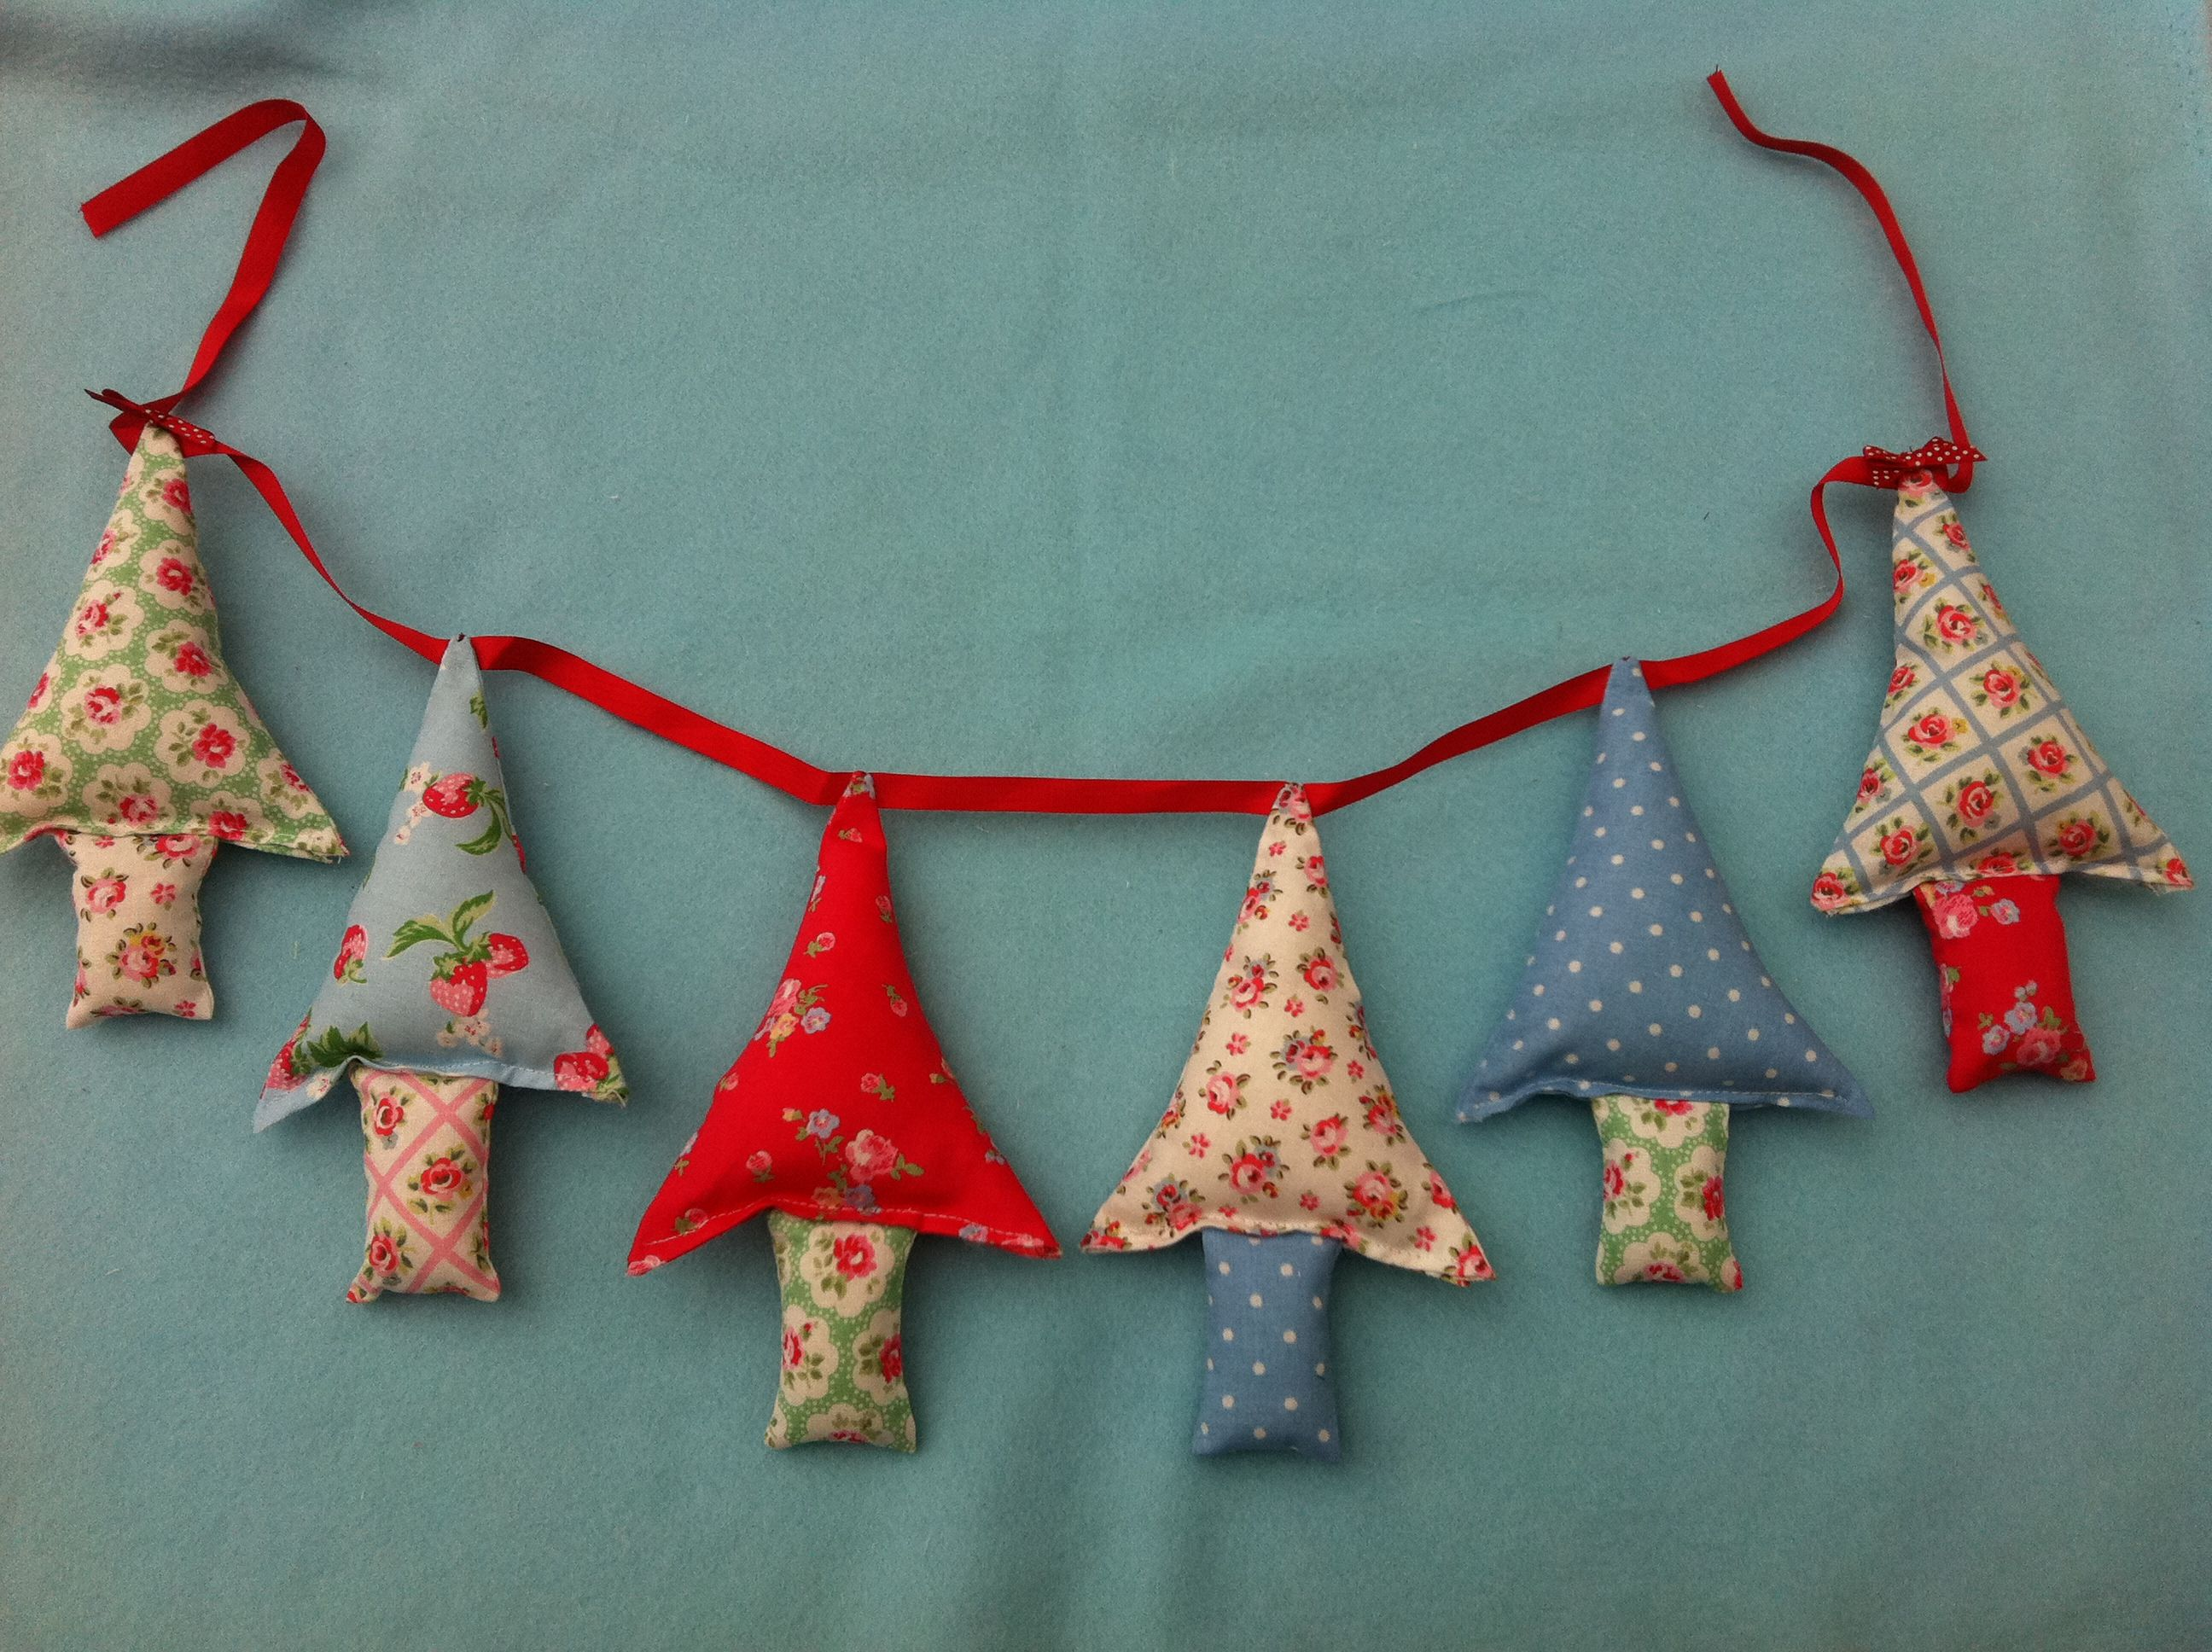 Christmas Tree Garland In Cath Kidston Fabrics 850 Available To